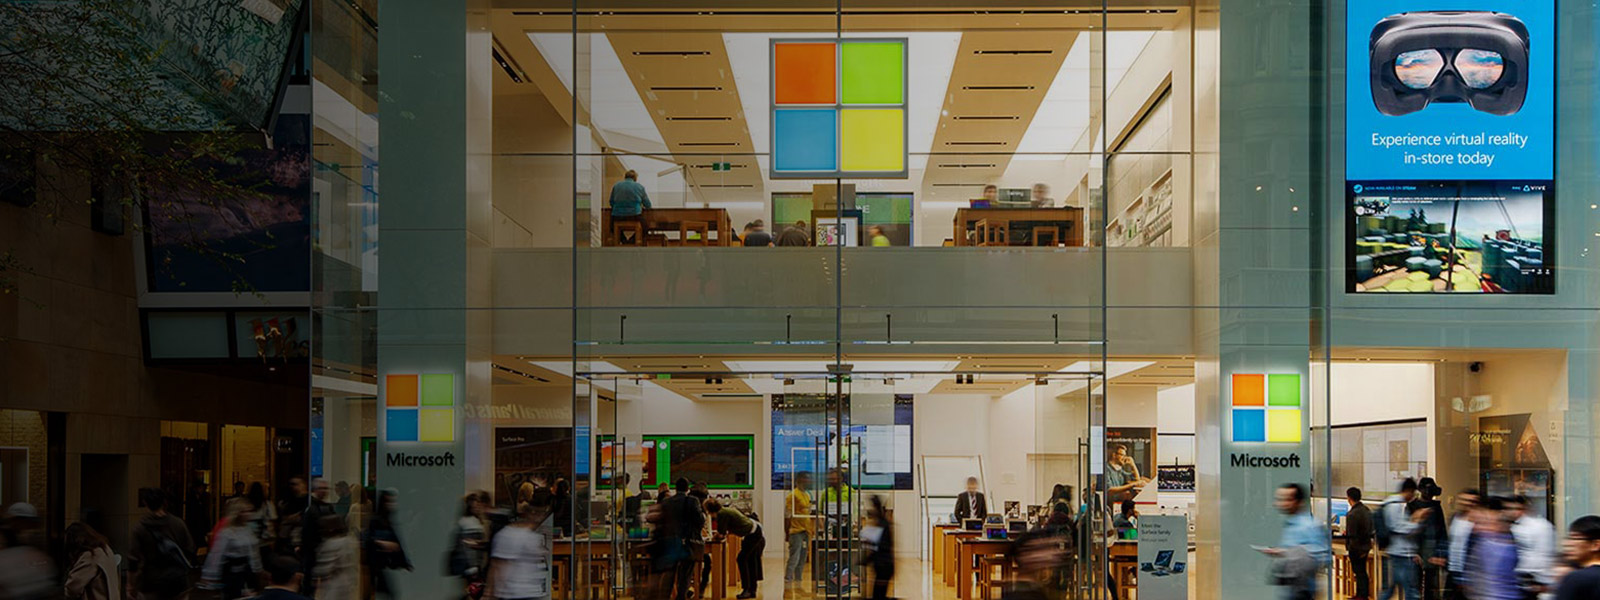 Microsoft Stores Find A Microsoft Retail Location